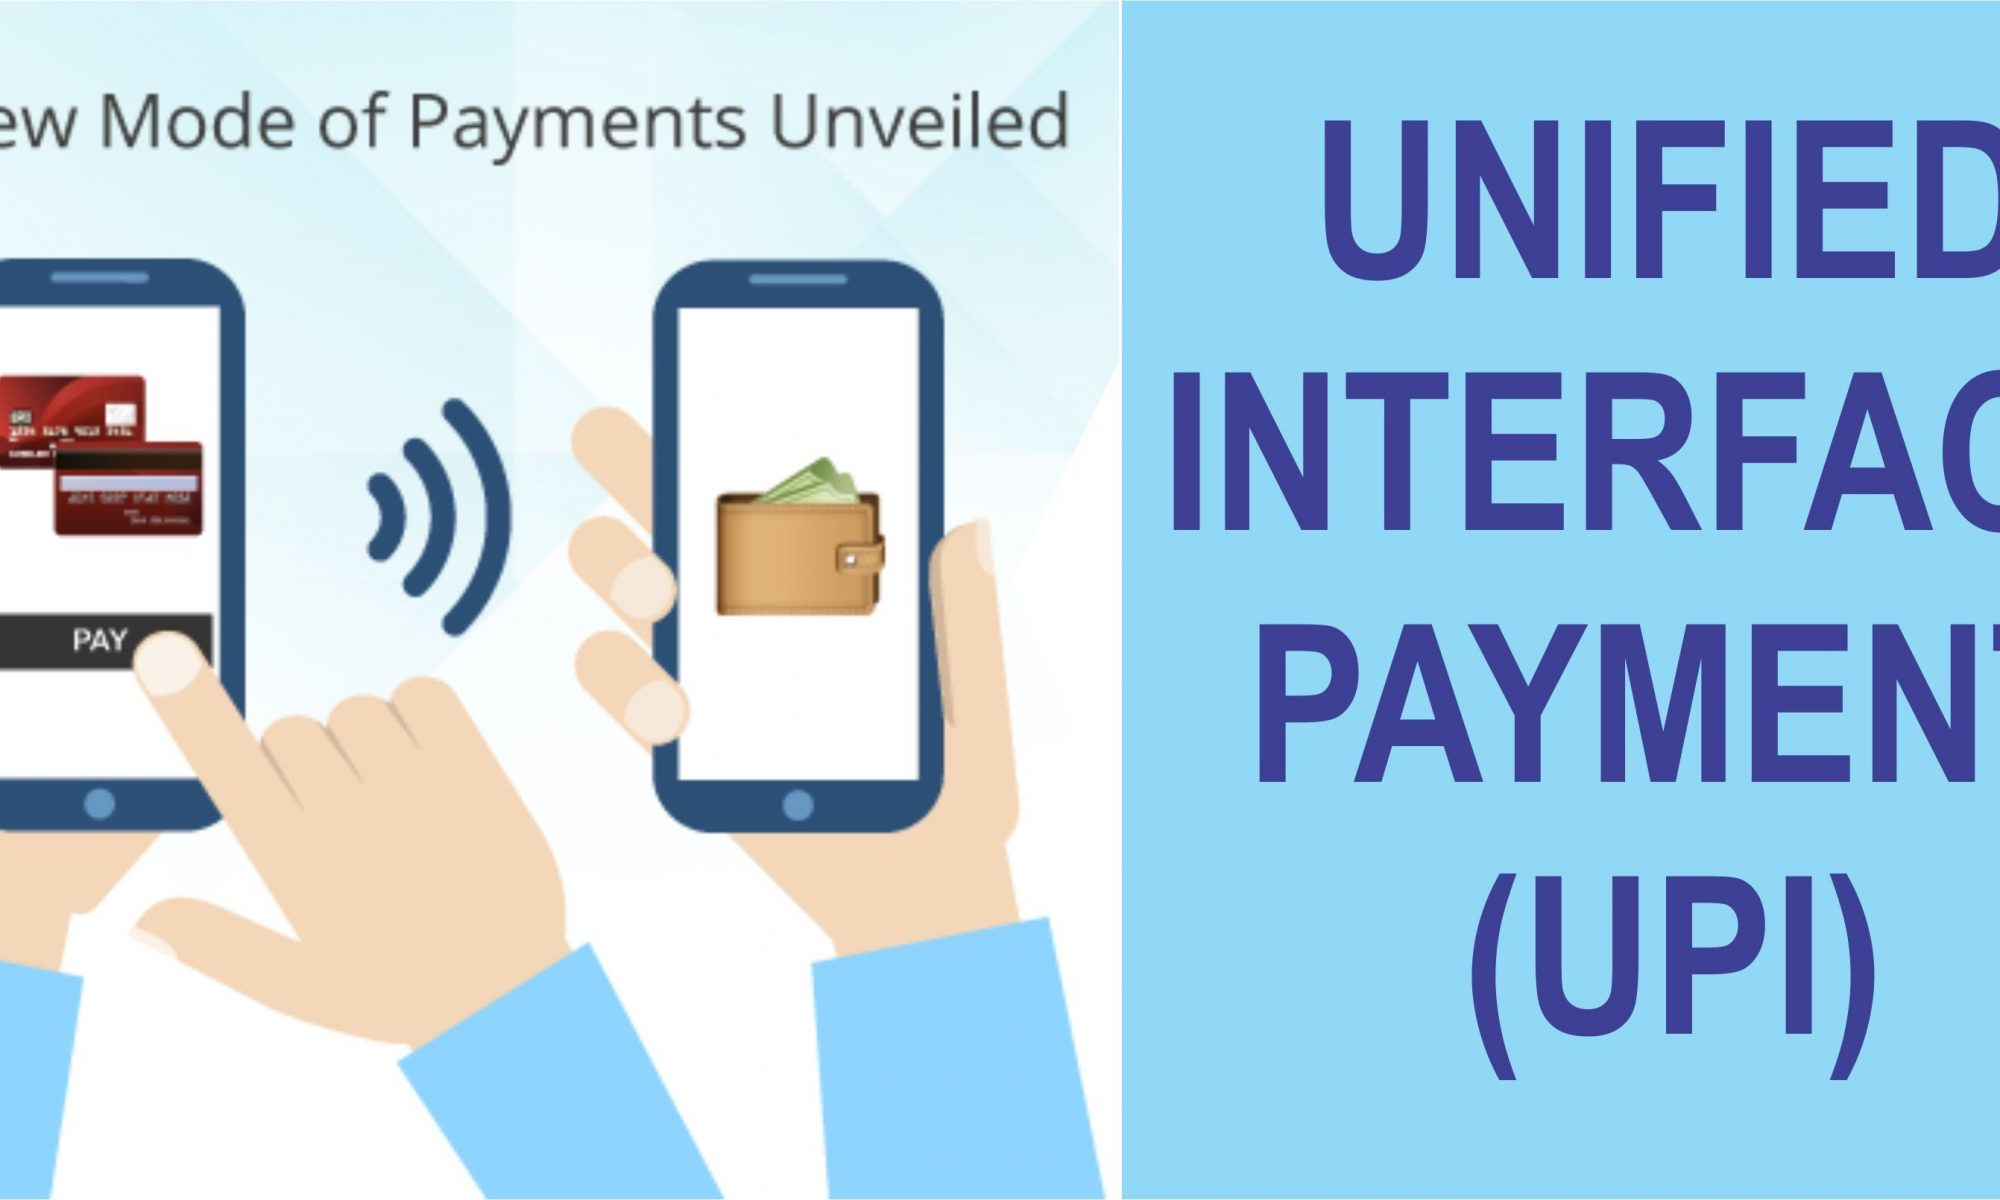 Unified Payments Interface